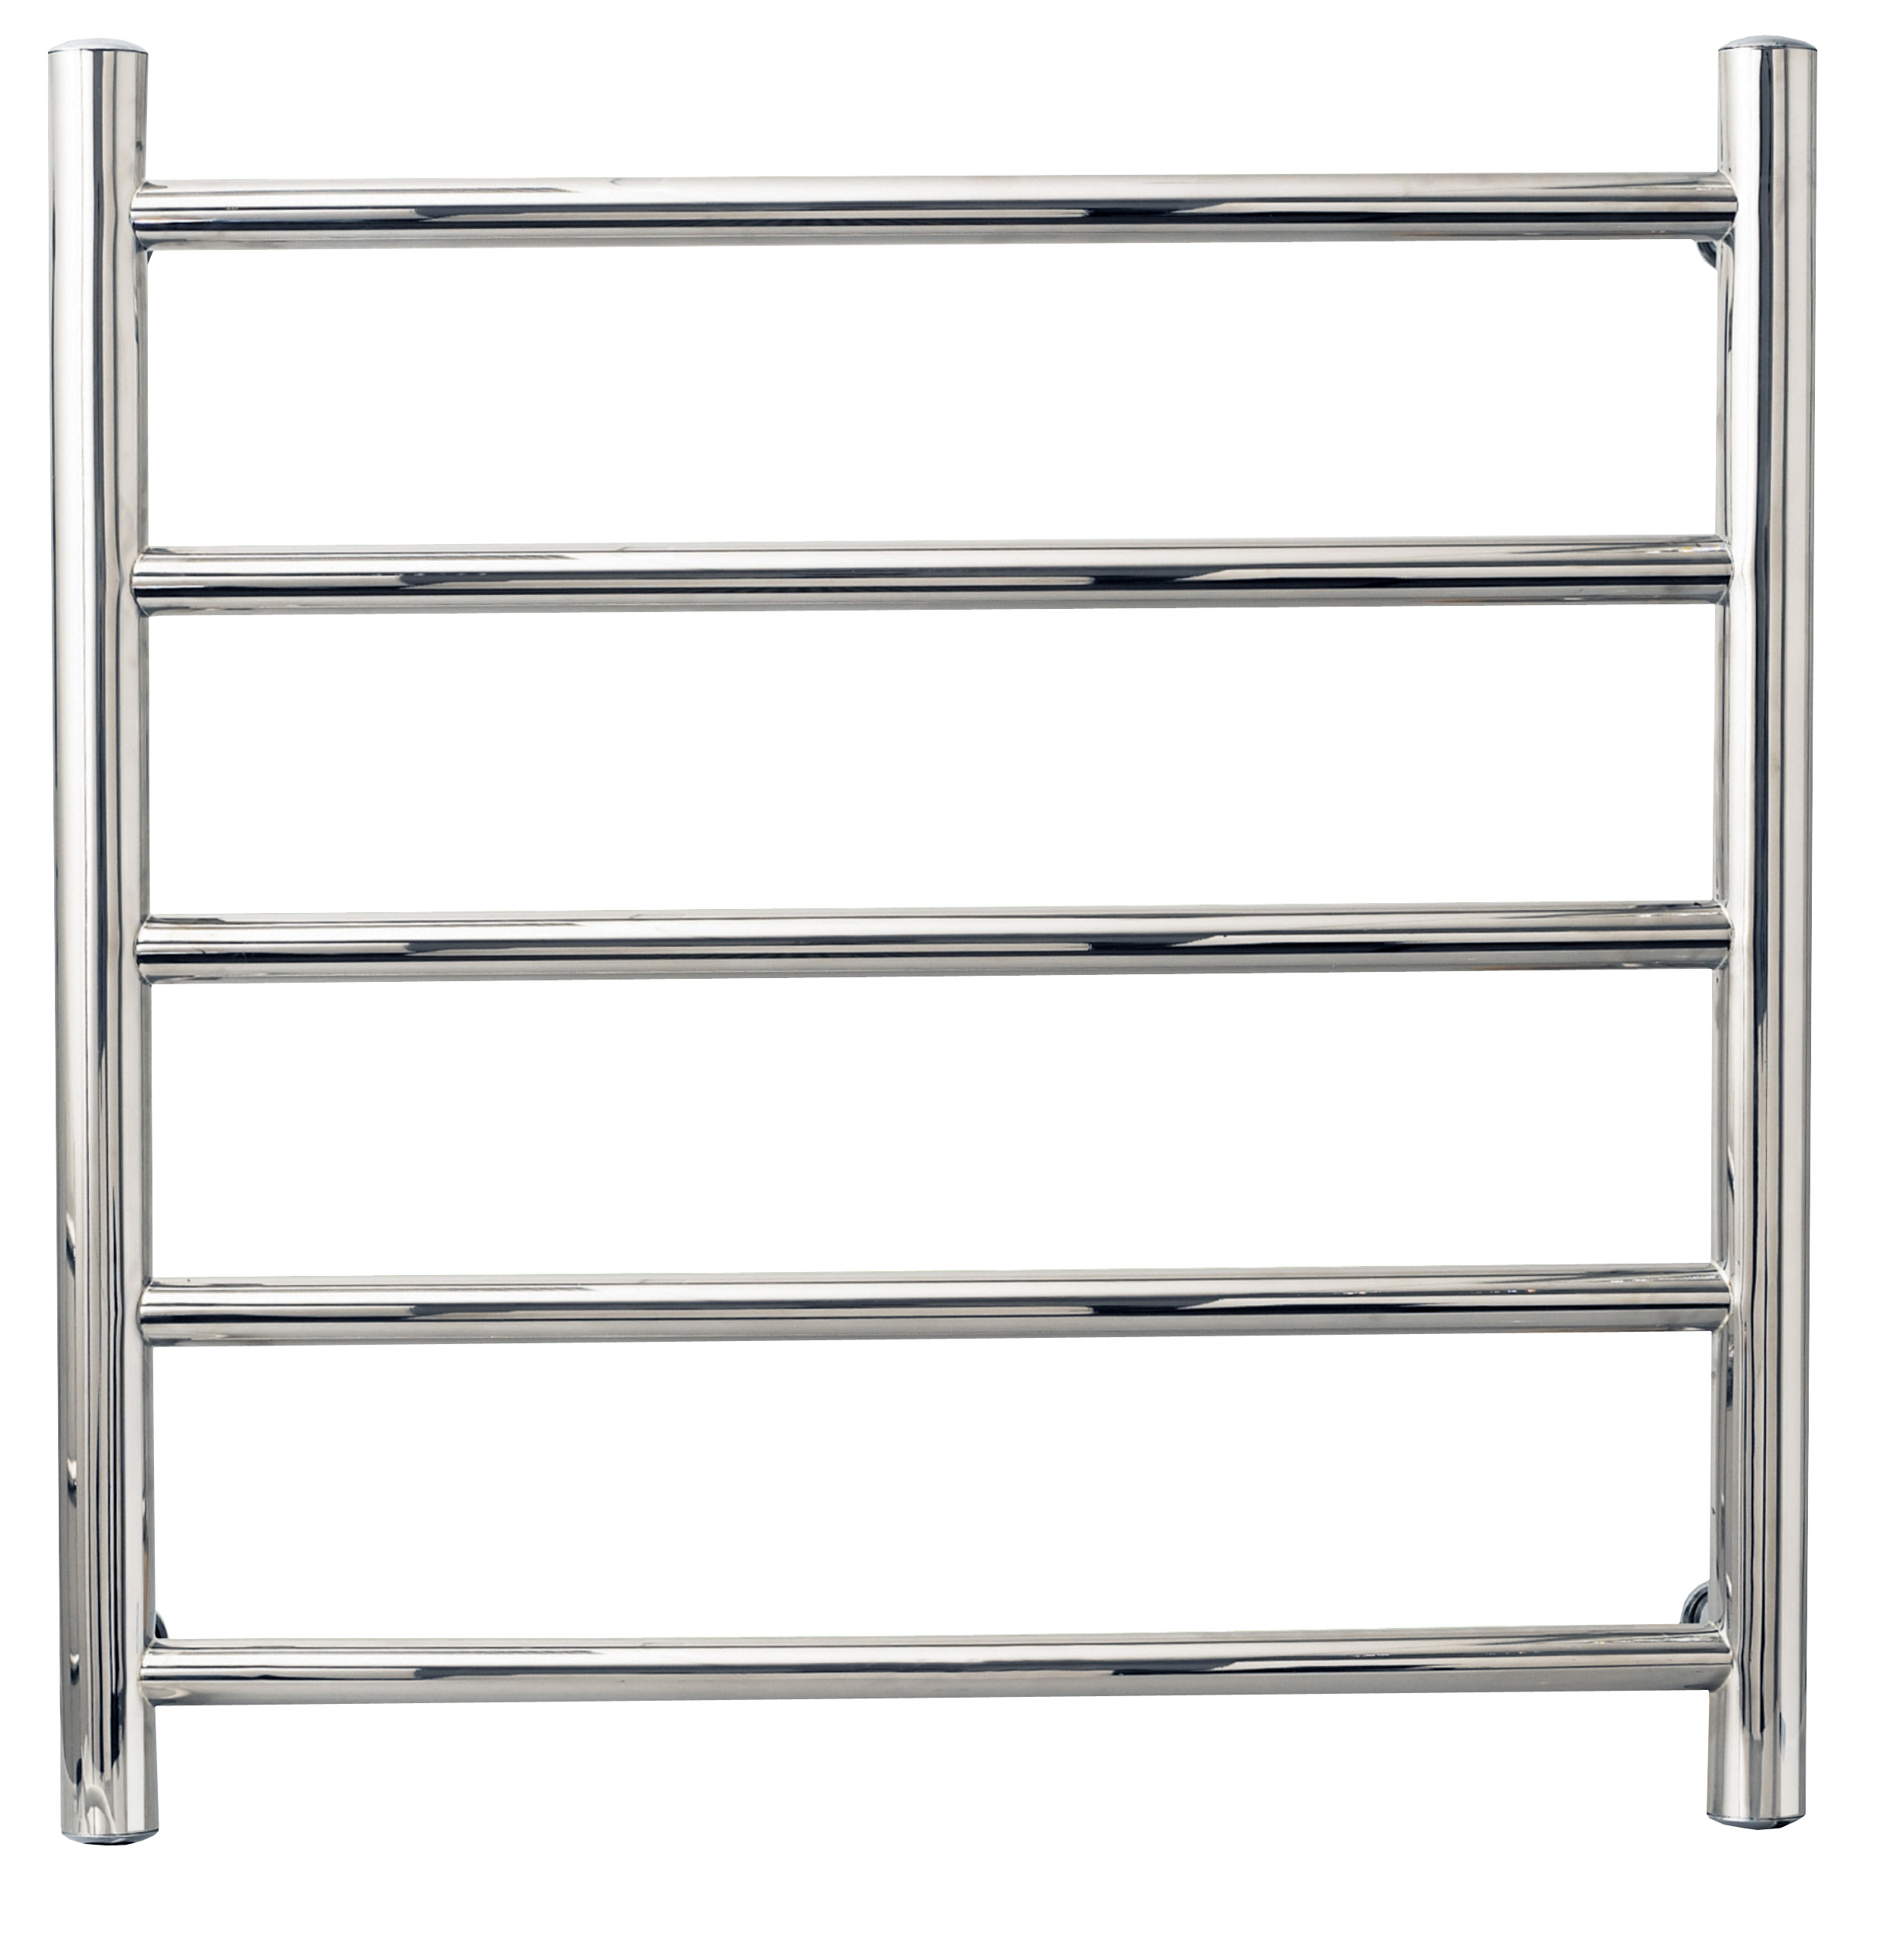 AZTEC 5 RUNG HEATED TOWEL RAIL